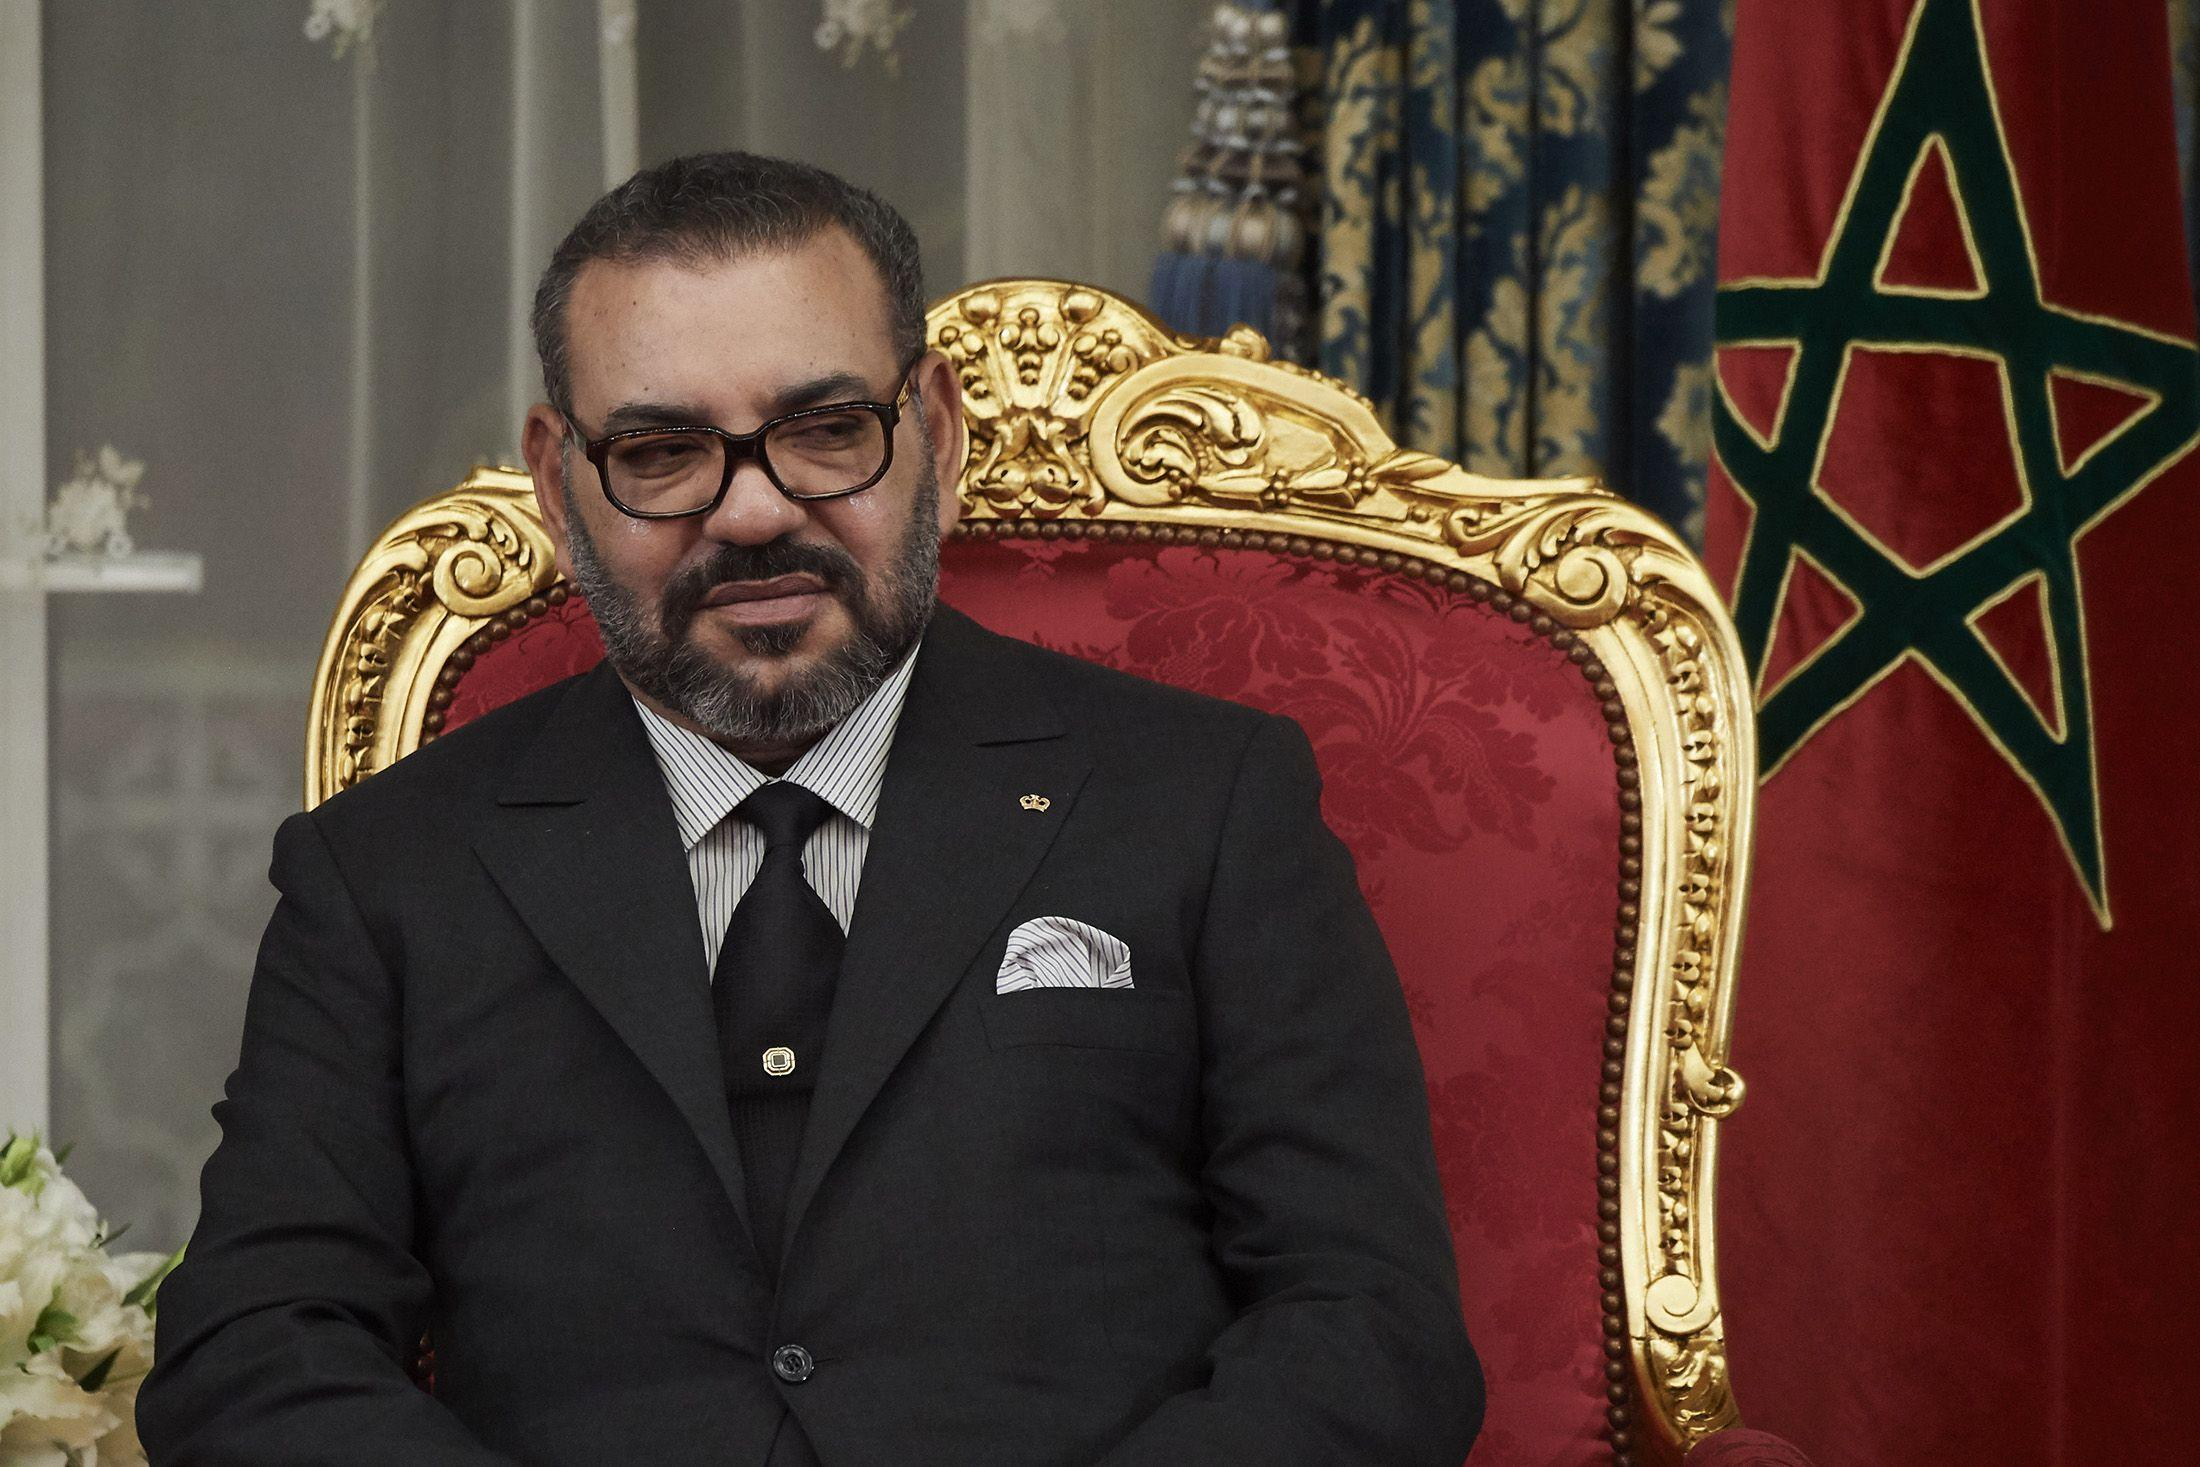 Moroccan Lawmakers to Probe Banks in Bid to Overhaul Economy